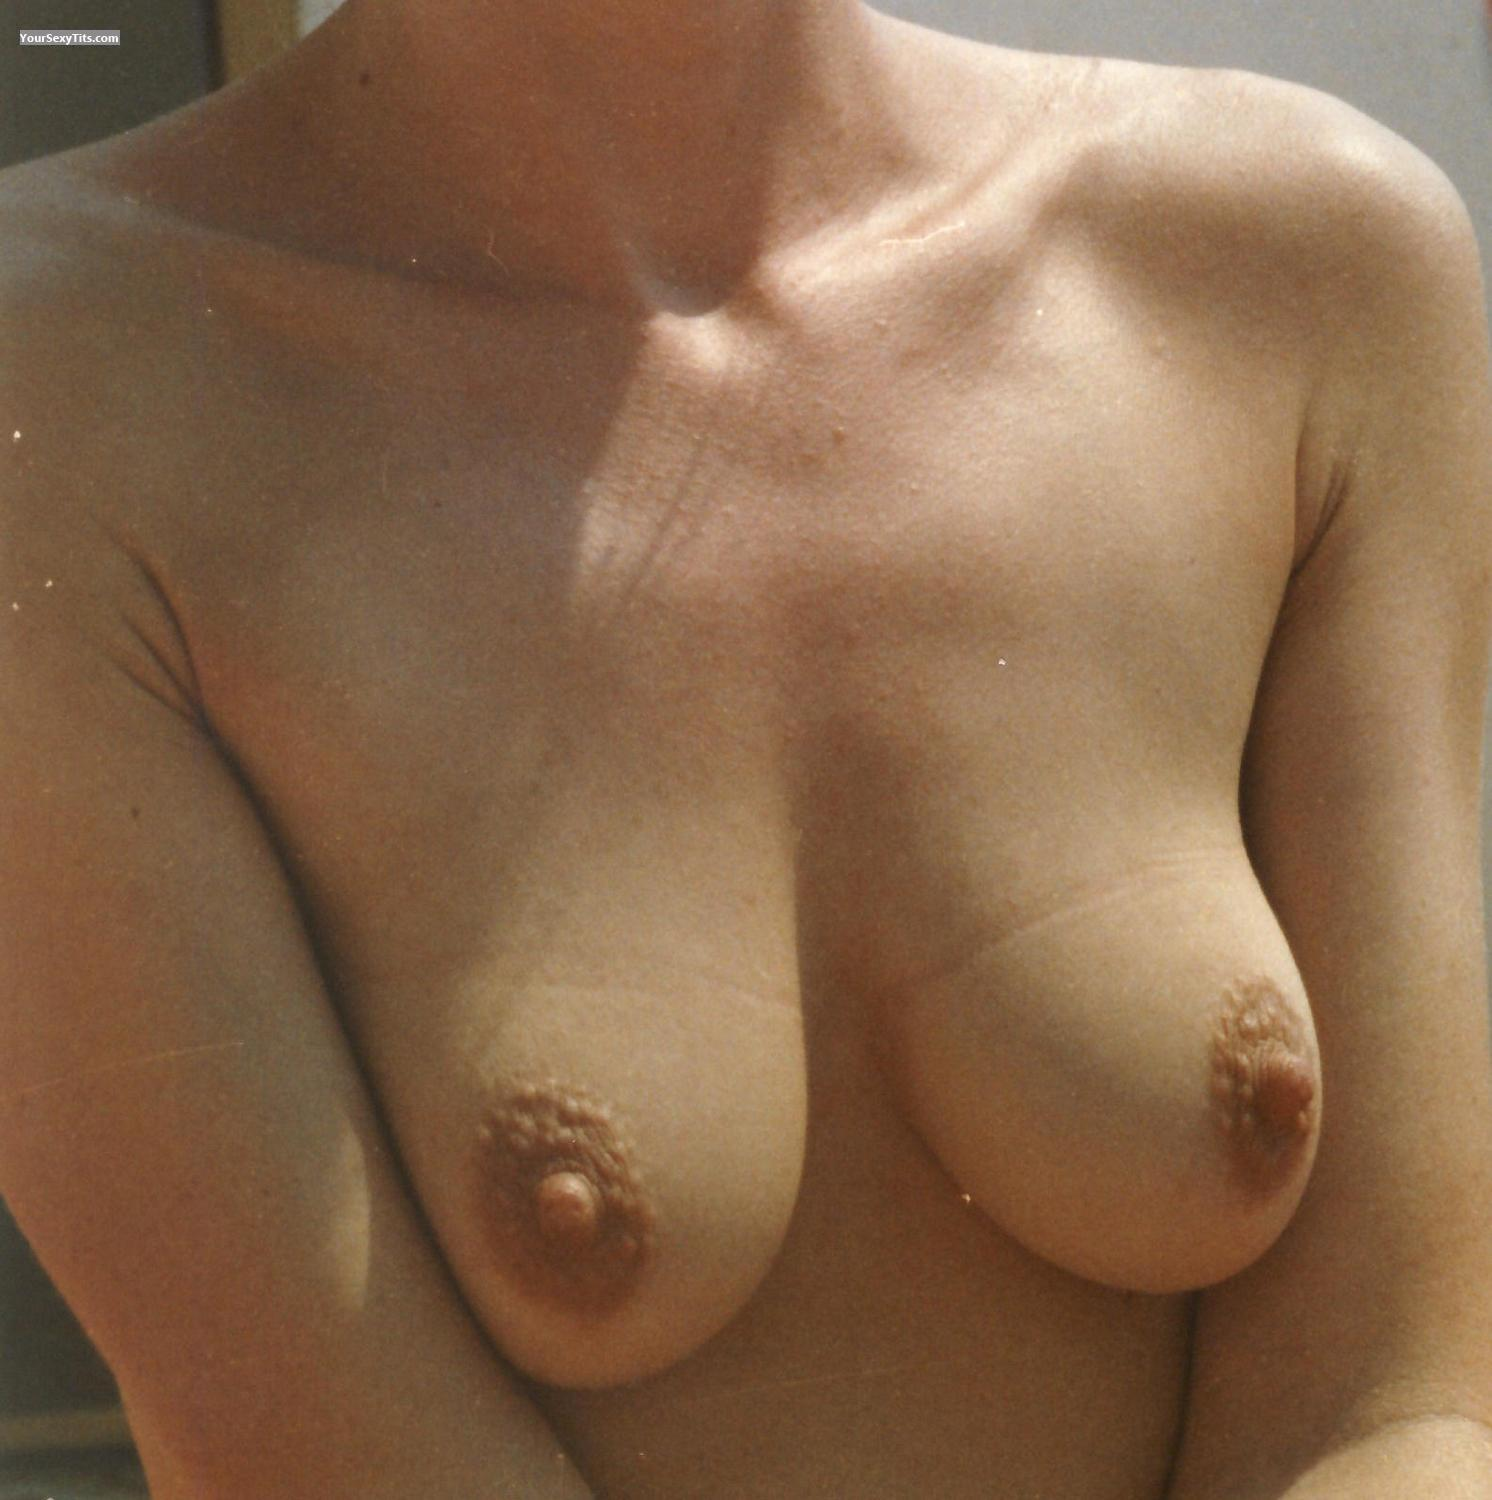 Tit Flash: Small Tits - Claudia from Germany